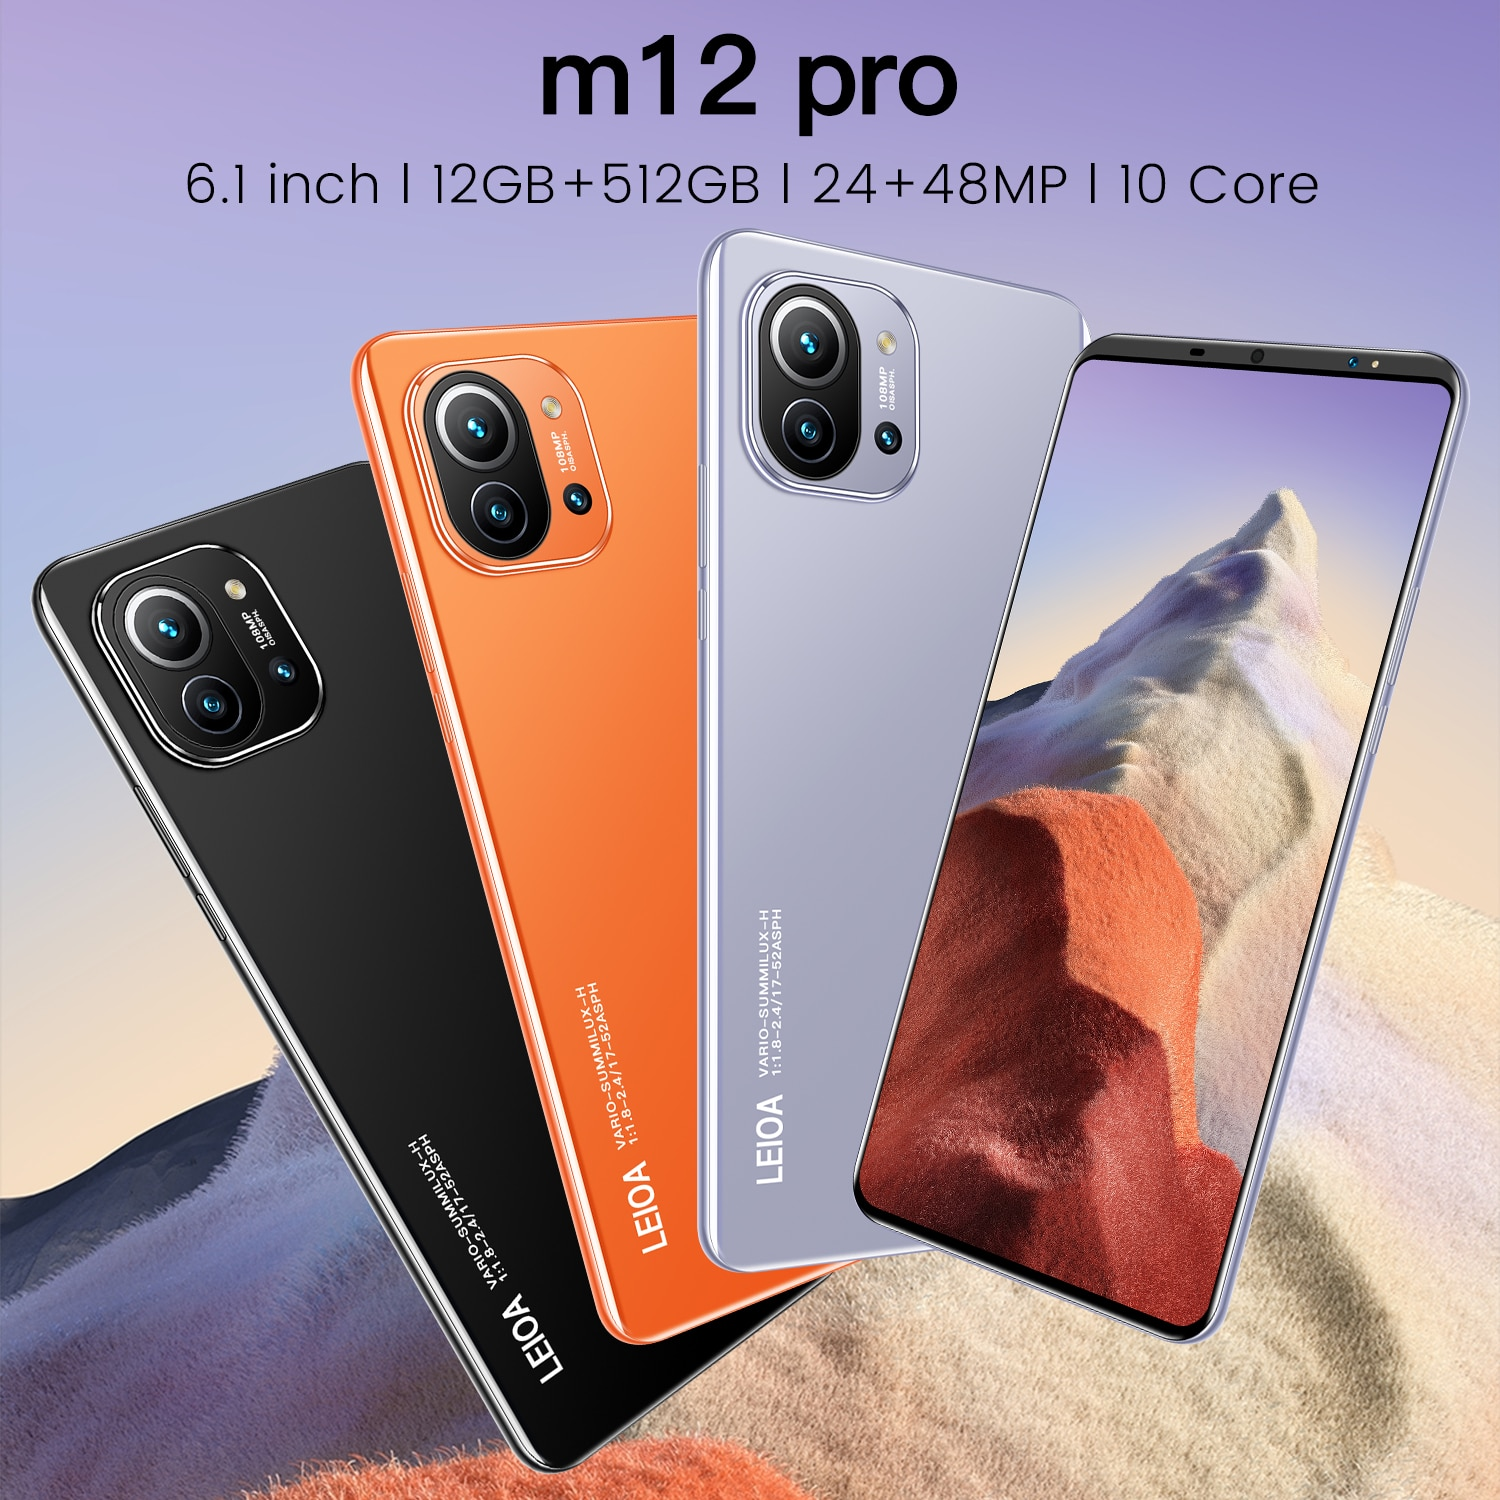 Cheapest Smartphone M12 Pro 6.1 Inch Full HD Screen 12G Ram 512G Rom Smart Phone Android 10 Deca Core Dual SIM GPS Mobile Phone